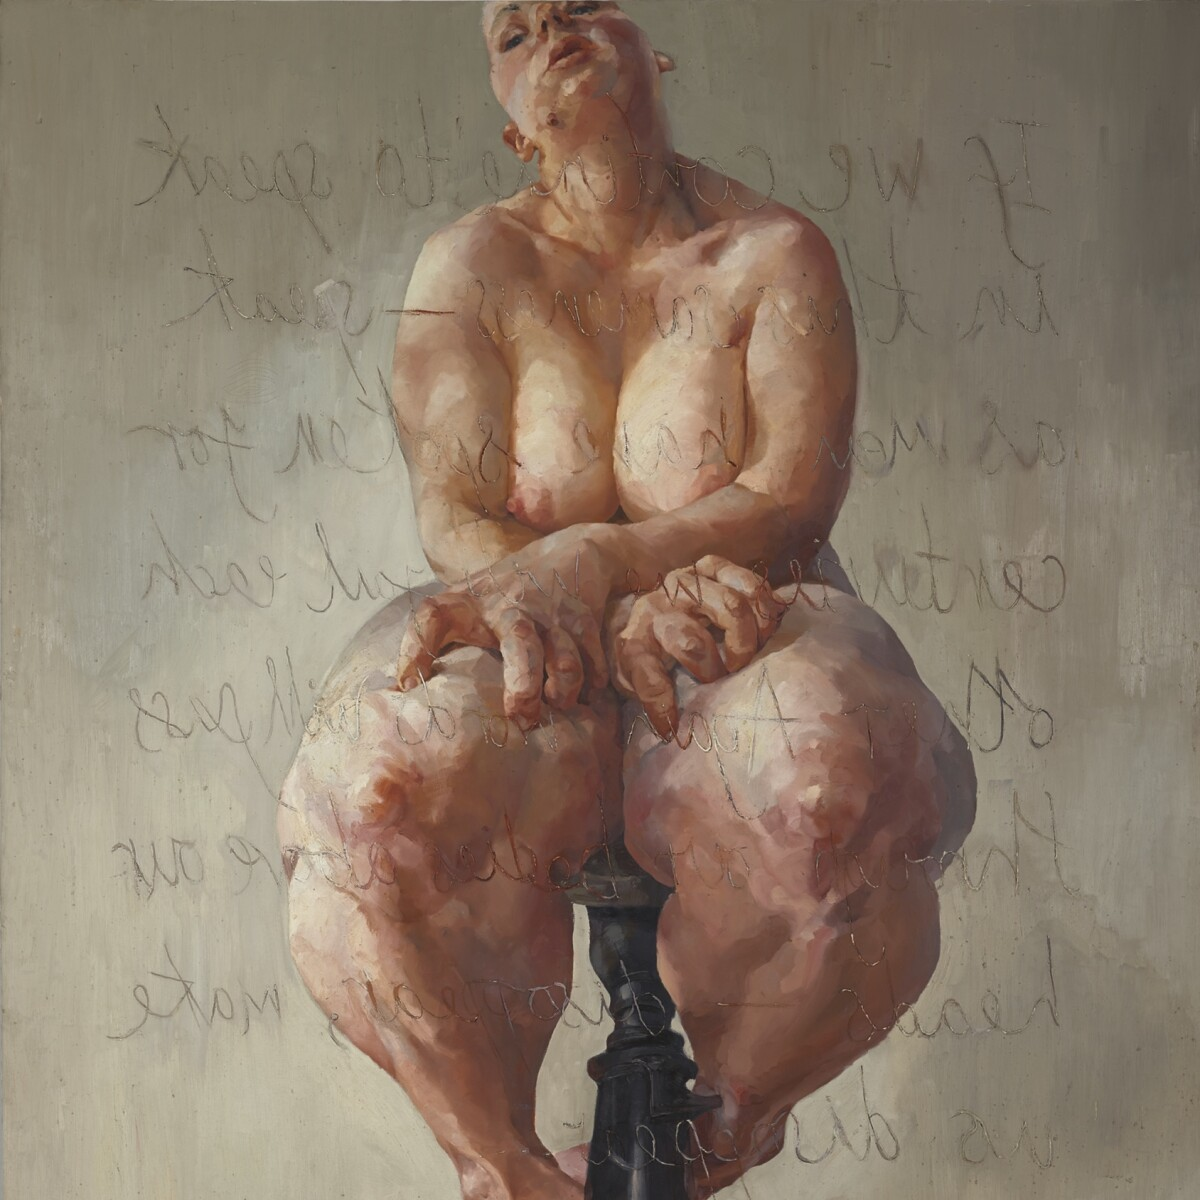 The Groundbreaking Self-Portrait That Launched Jenny Saville's Career |  London Frieze Week Auctions | Sotheby's